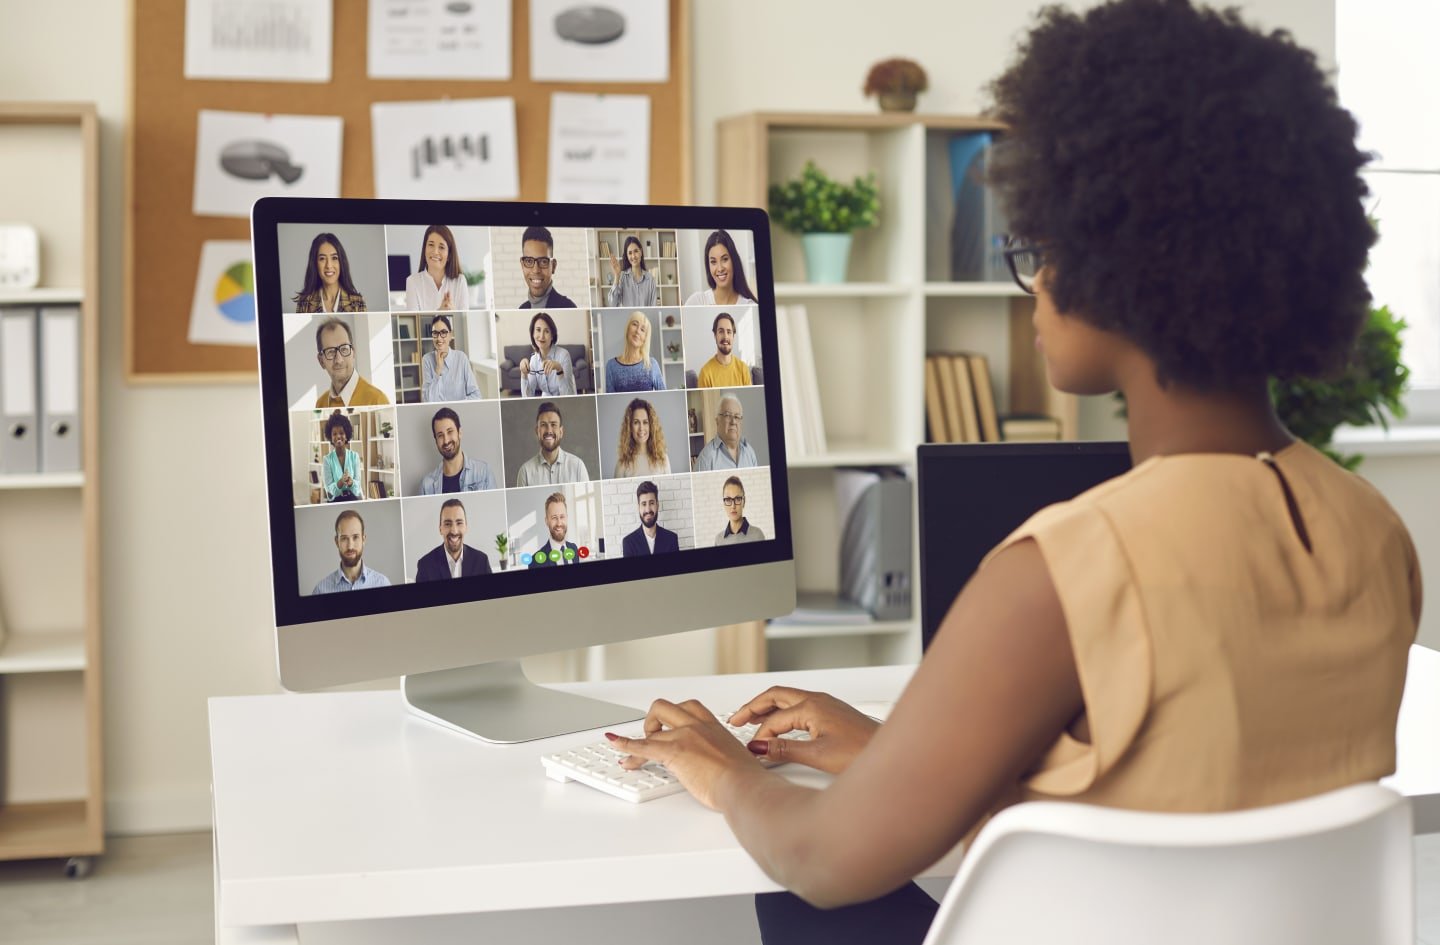 Manager working with remote team via webconferencing